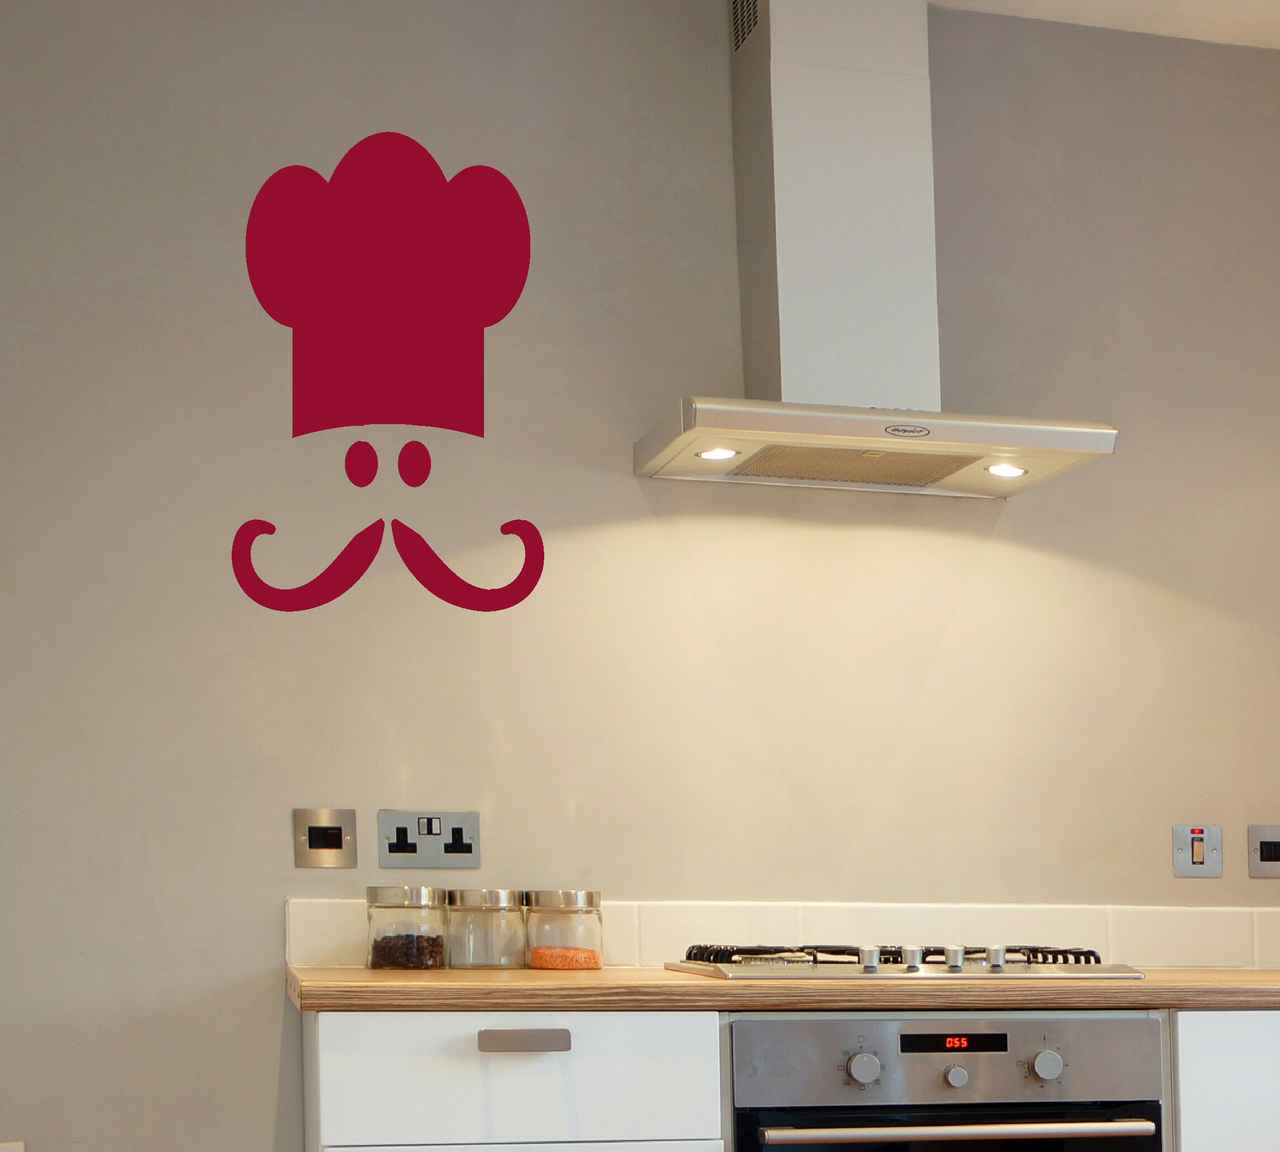 Chef S Face And Hat Kitchen Decor Wall Decal Sticker Art